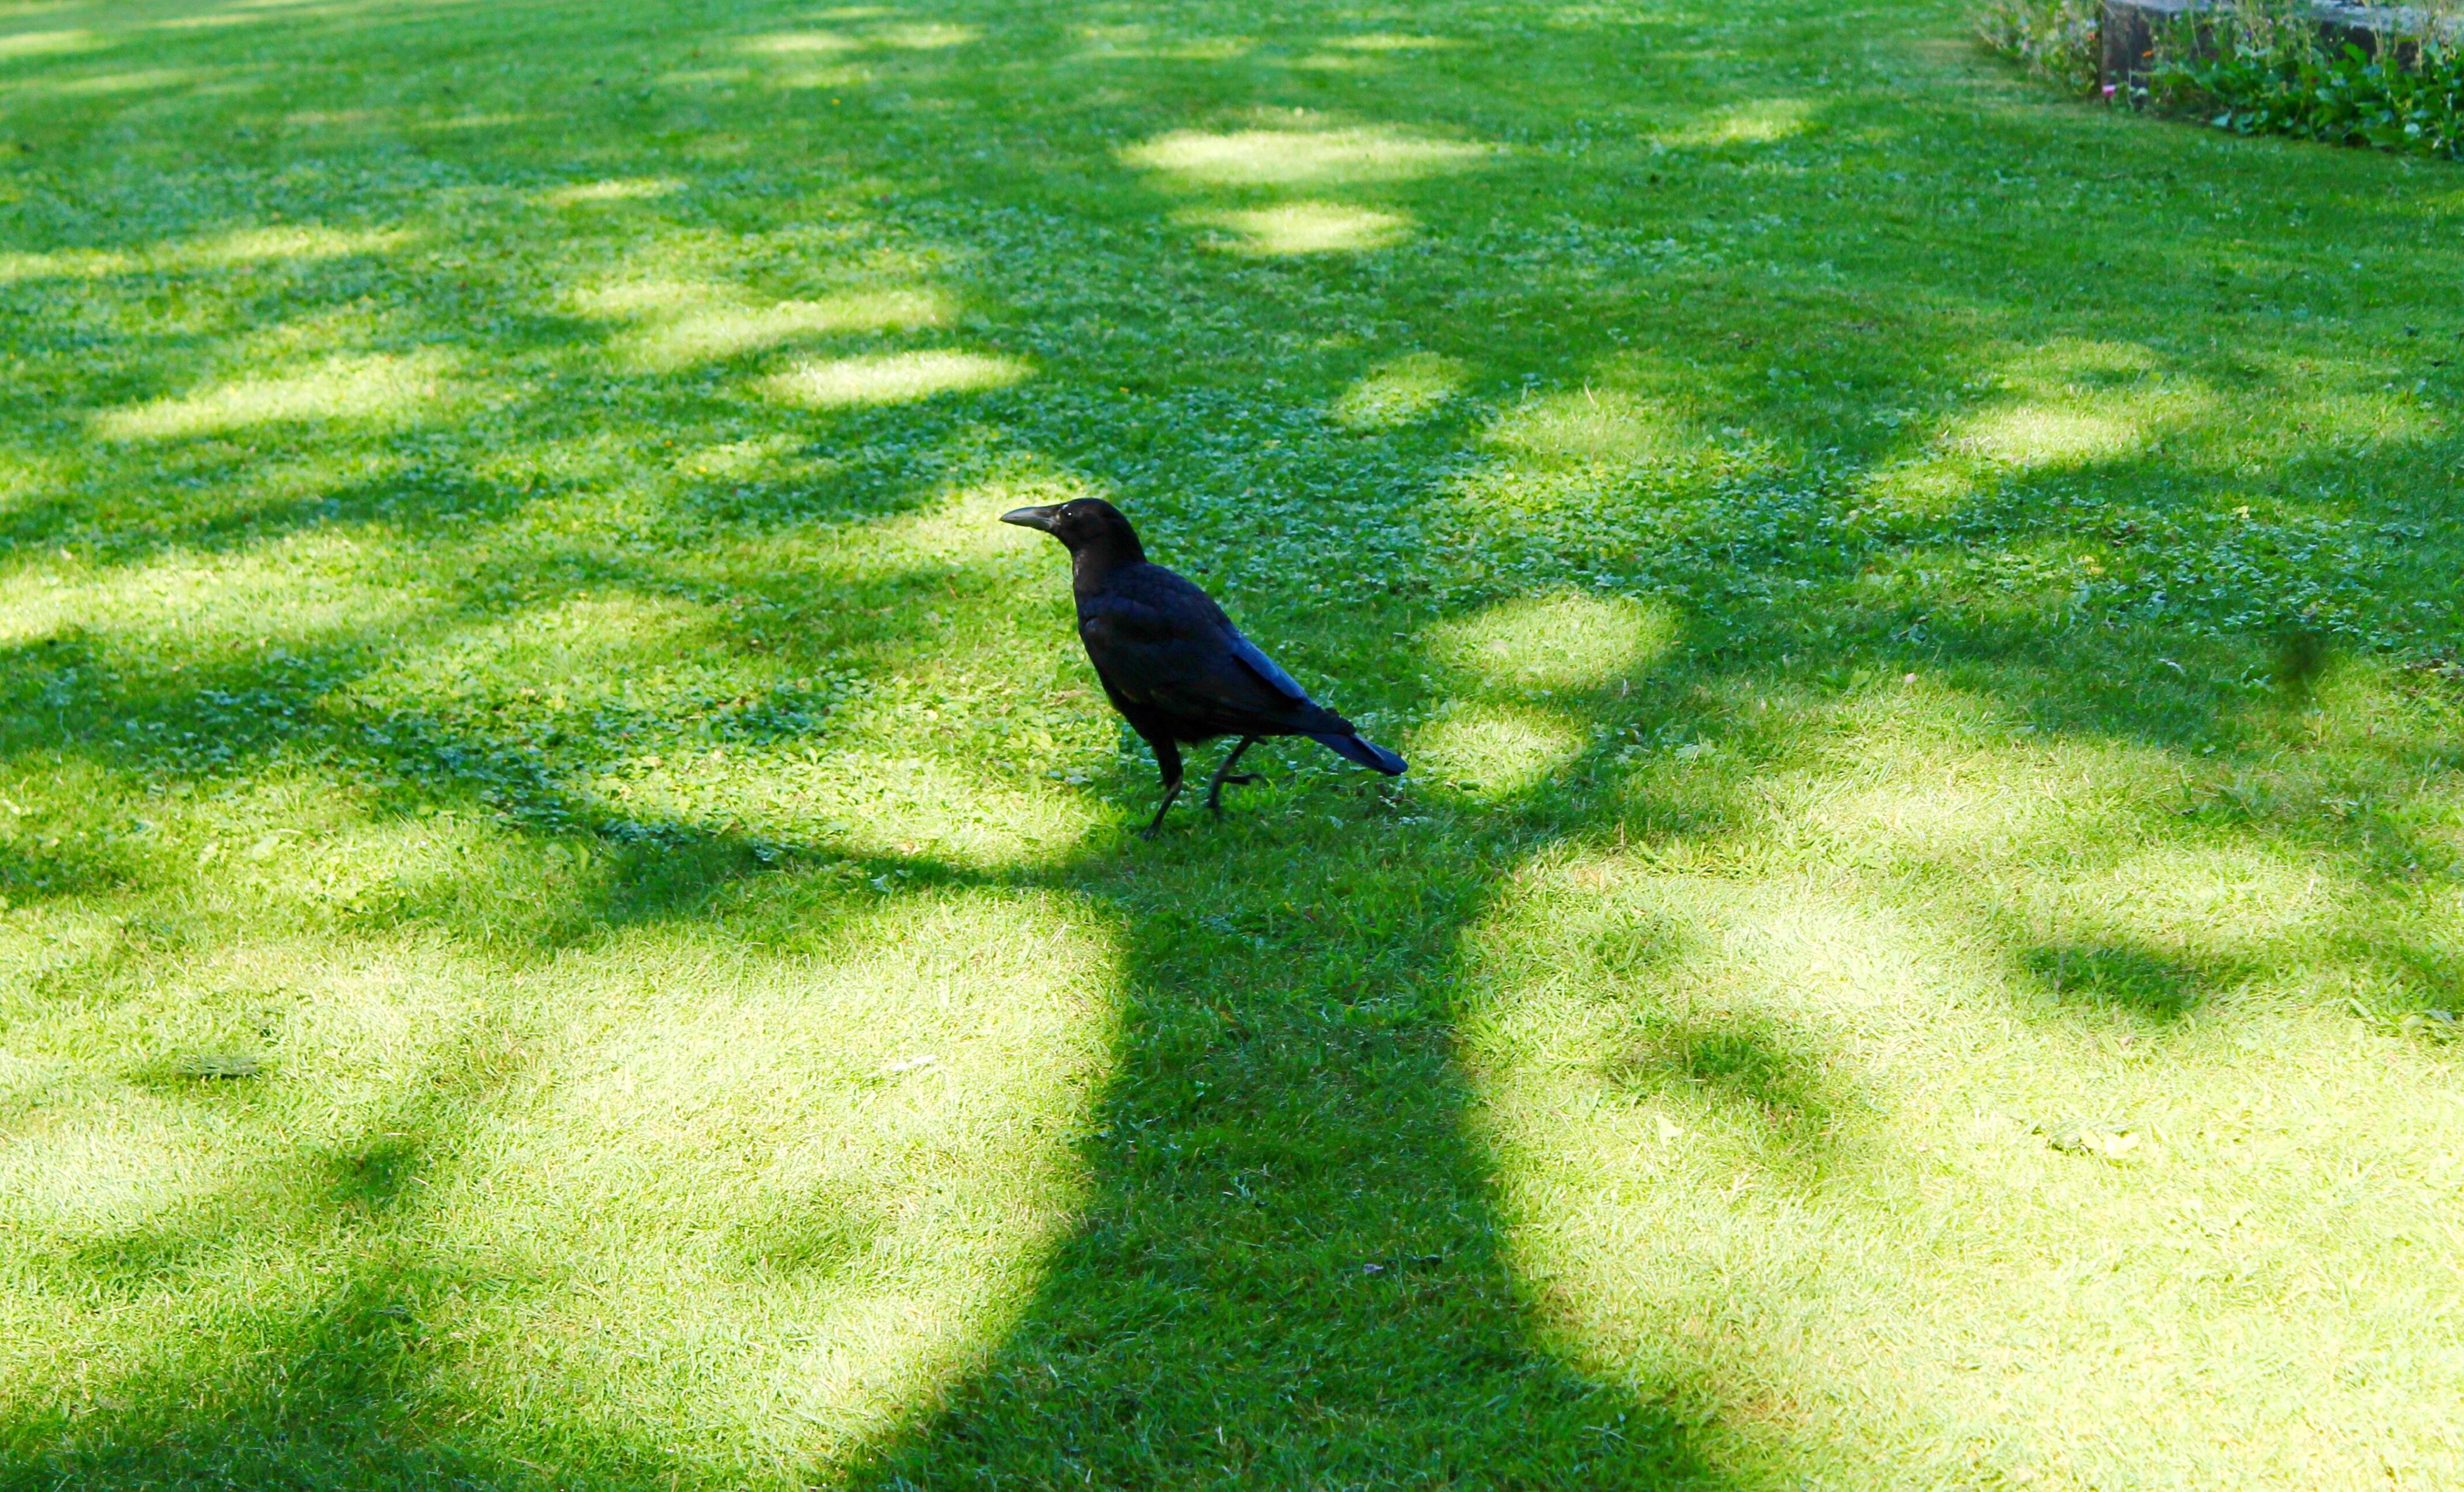 Crow In The Shadow Of A Tree Bird Animals In The Wild Animal Themes One Animal Animal Wildlife Grass Nature Shadow Outdoors Sunlight Perching Day Field Green Color No People Crow